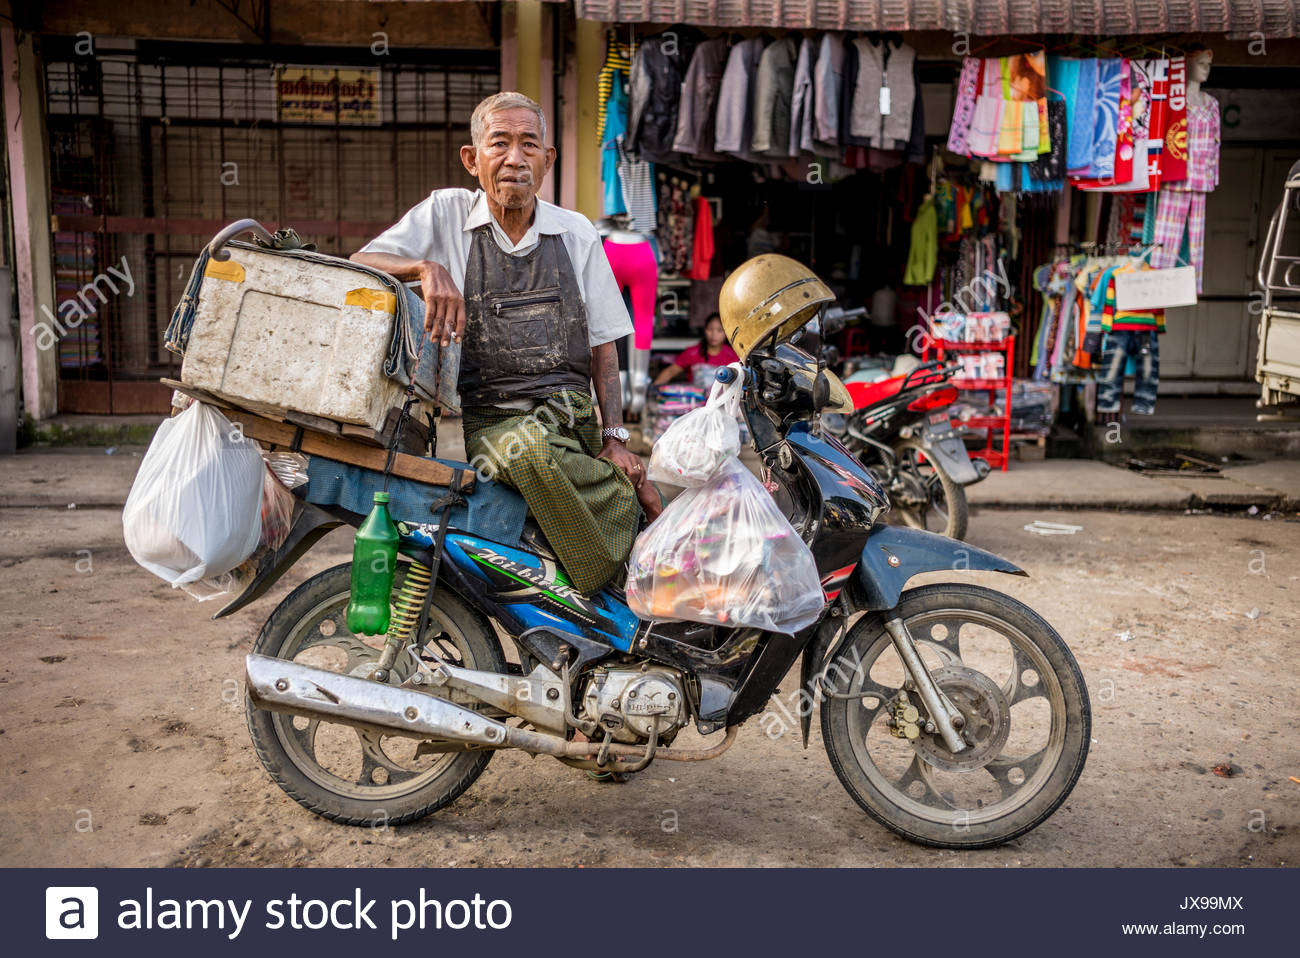 A man sits on a motorcycle filled with goods at the Mytchina street market. - Stock Image